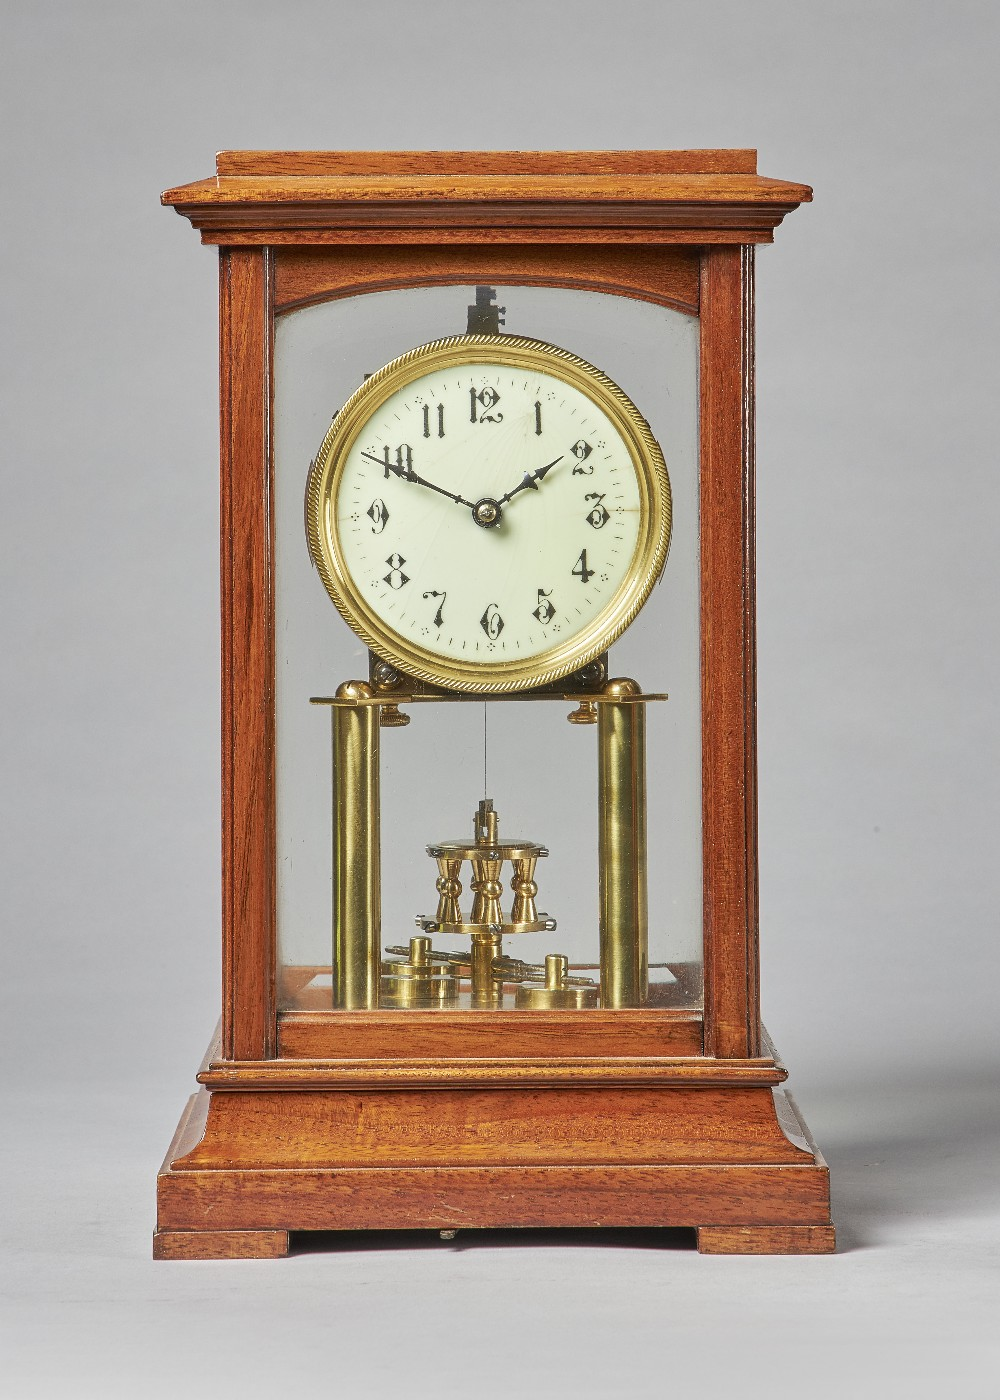 Lot 709 - A mahogany cased torsion timepiece By Gustav Becker, Freiburg,